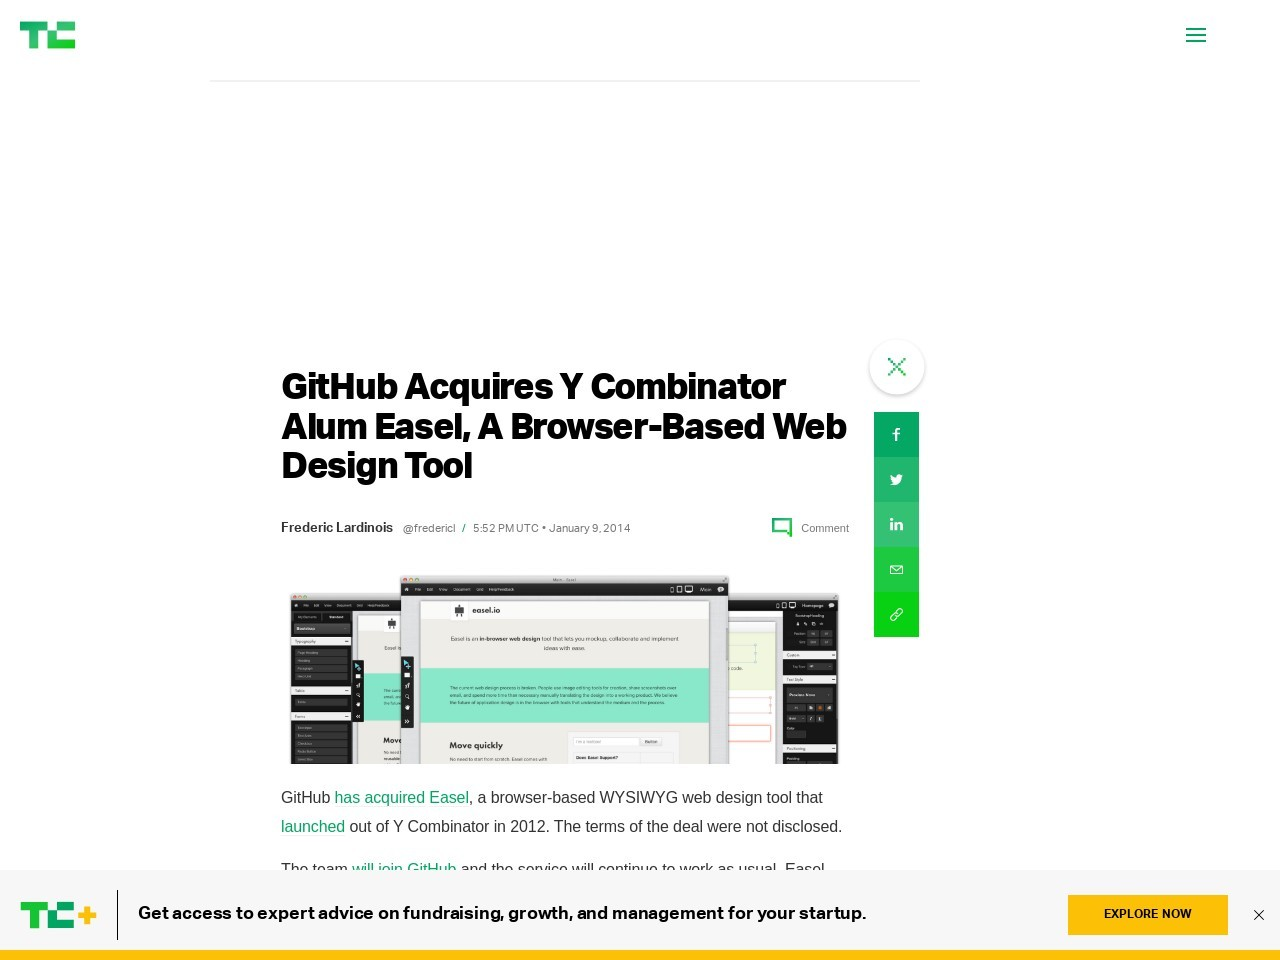 GitHub Acquires Y Combinator Alum Easel, A Browser-Based Web Design Tool